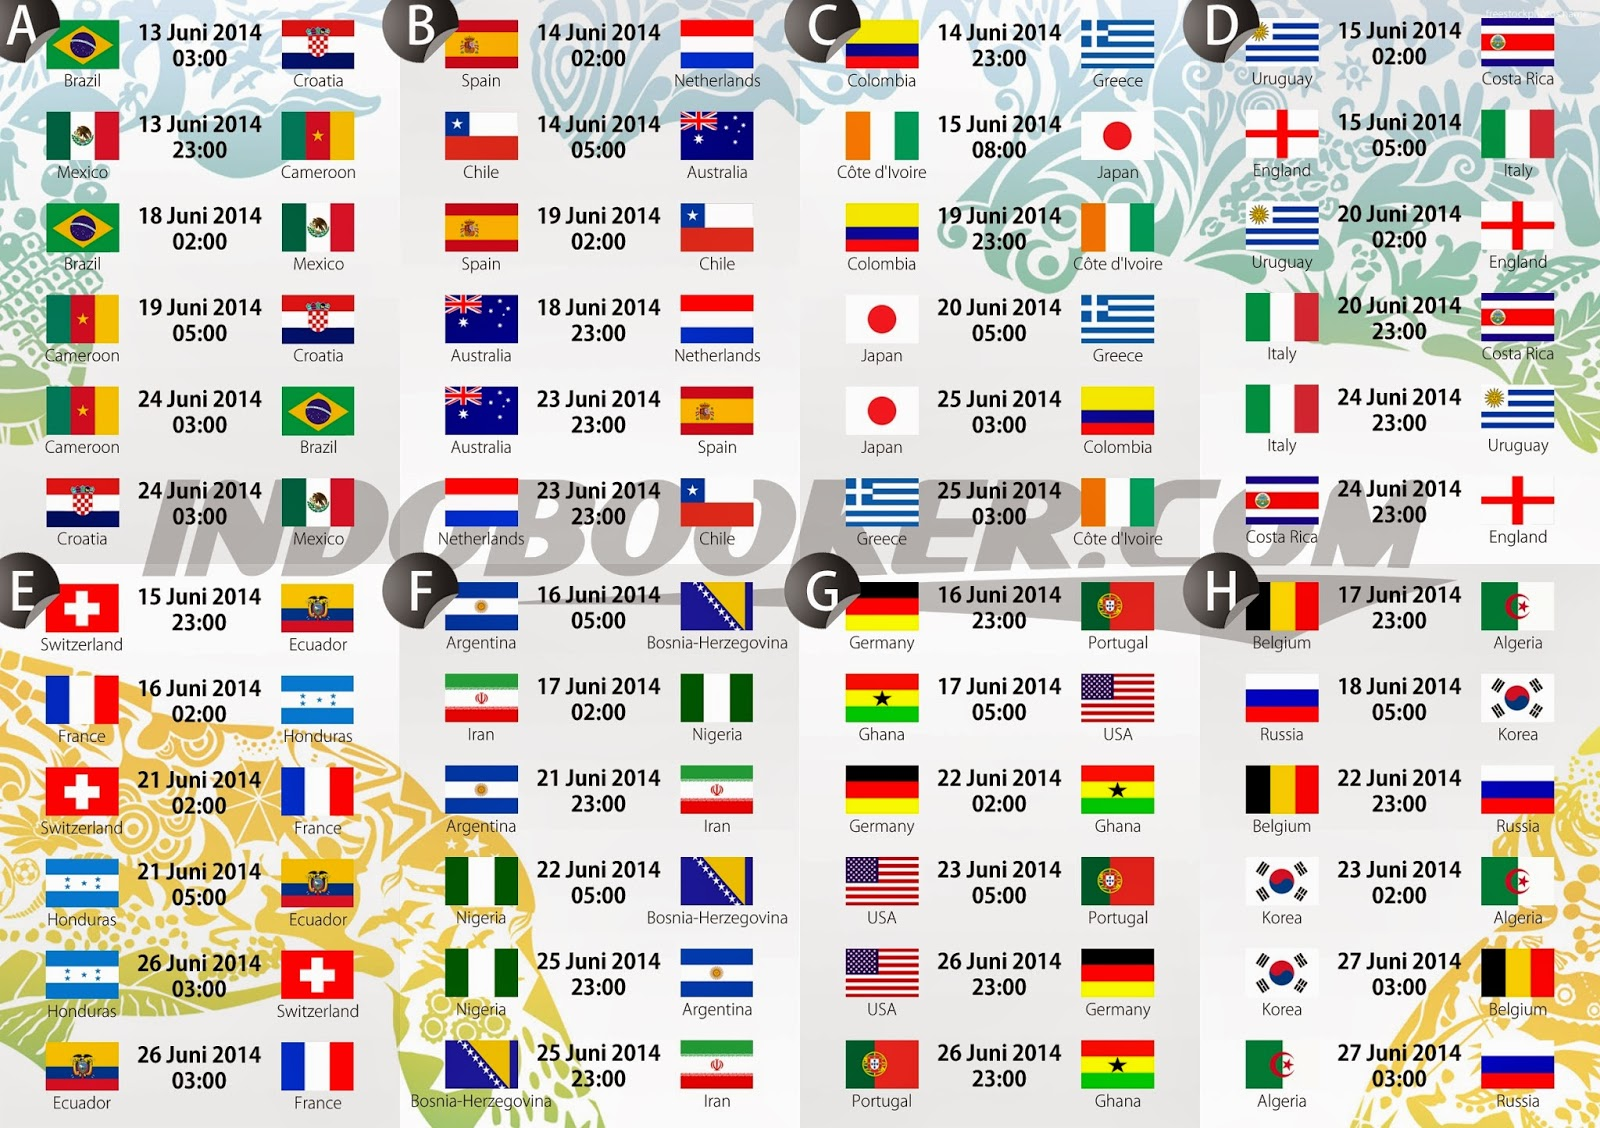 Fantastic Fixture Bd Time World Cup 2018 - 2014+FIFA+World+Cup+Schedule+Fixtures+\u0026+Time++Table+2  Trends_100128 .jpg